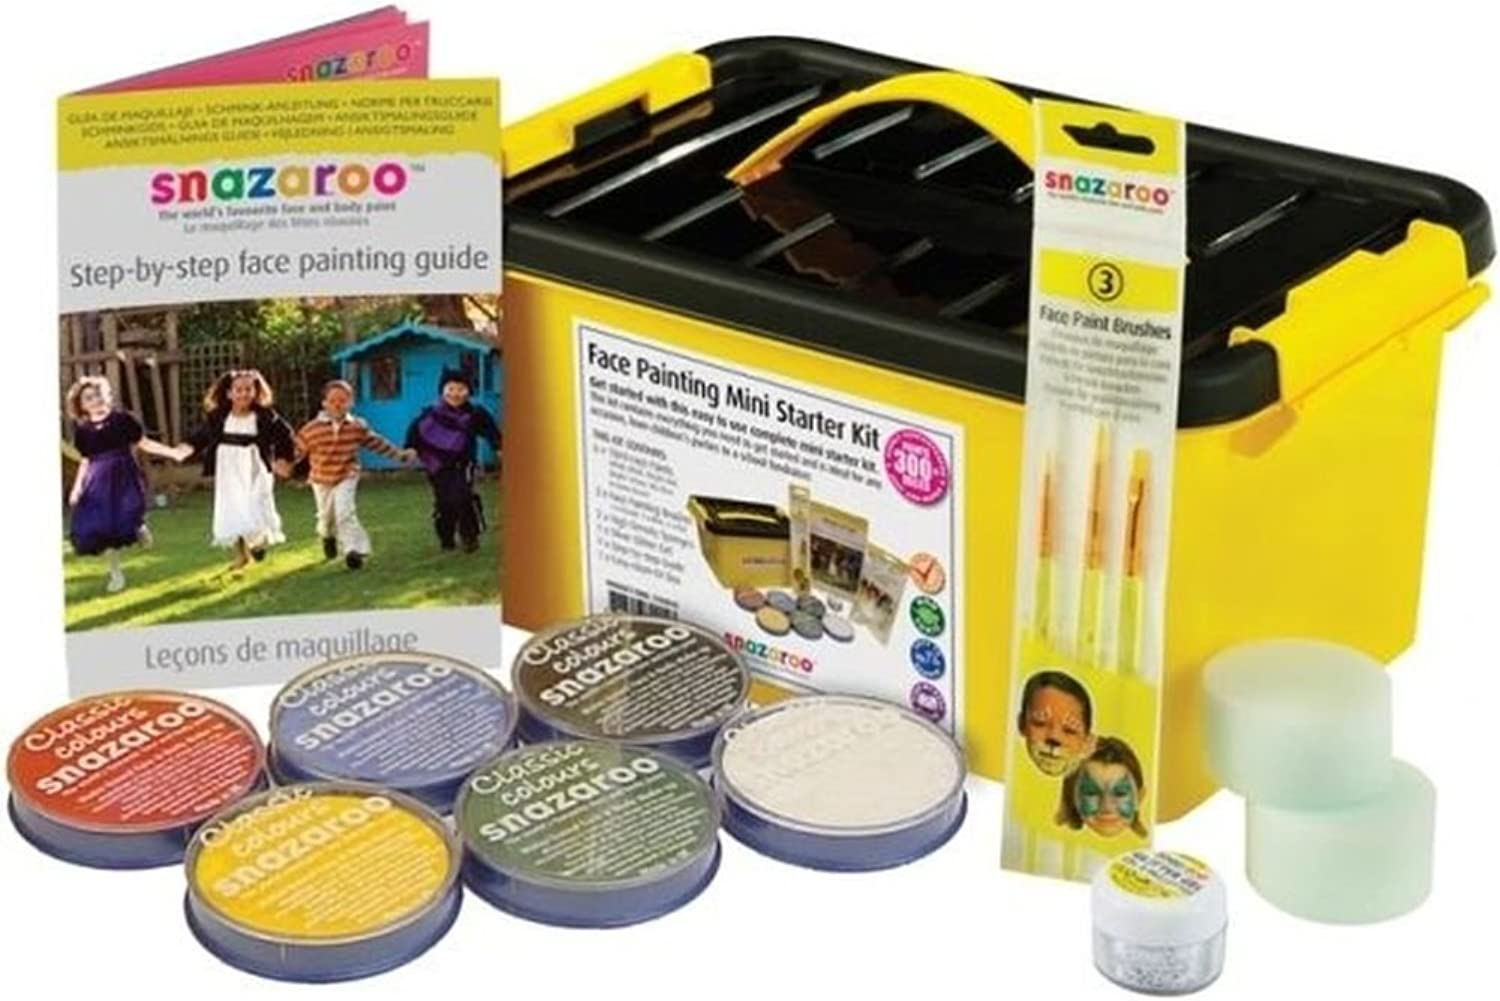 NANA'S PARTY Shipping Fast Snazaroo Mini Starter Face Paint Kit (Paints 300+ Faces) Make Up Guide Sponges+